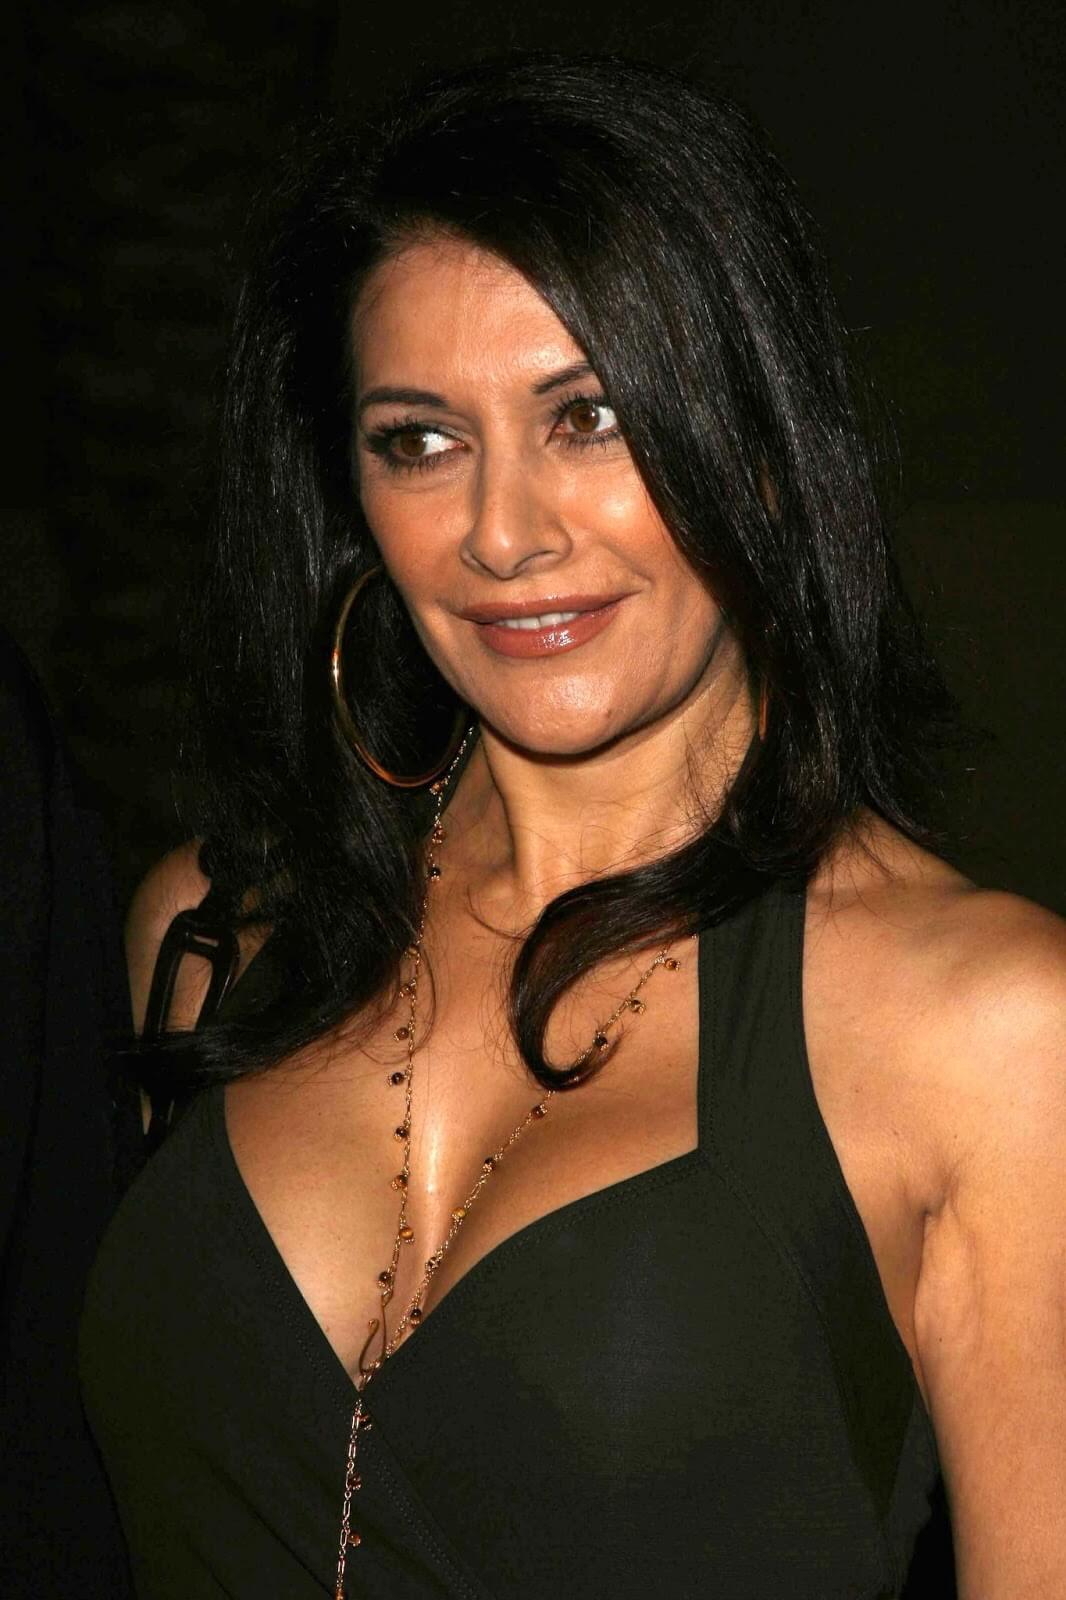 Marina Sirtis hot cleavage